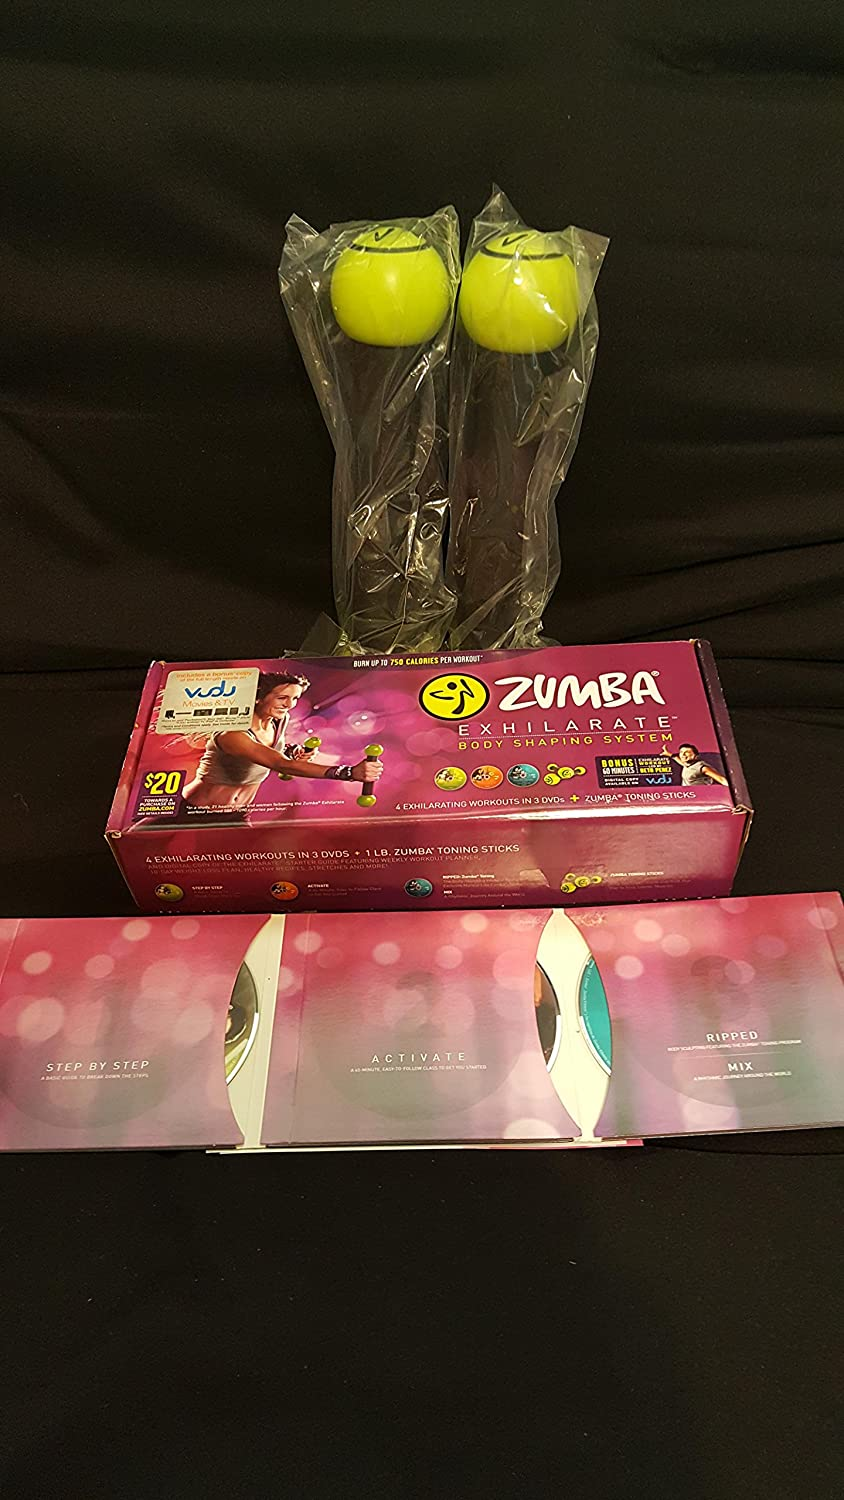 Amazon.com : Zumba Fitness Exhilarate Body Shaping System DVD Set + Toning  Sticks : Sports & Outdoors